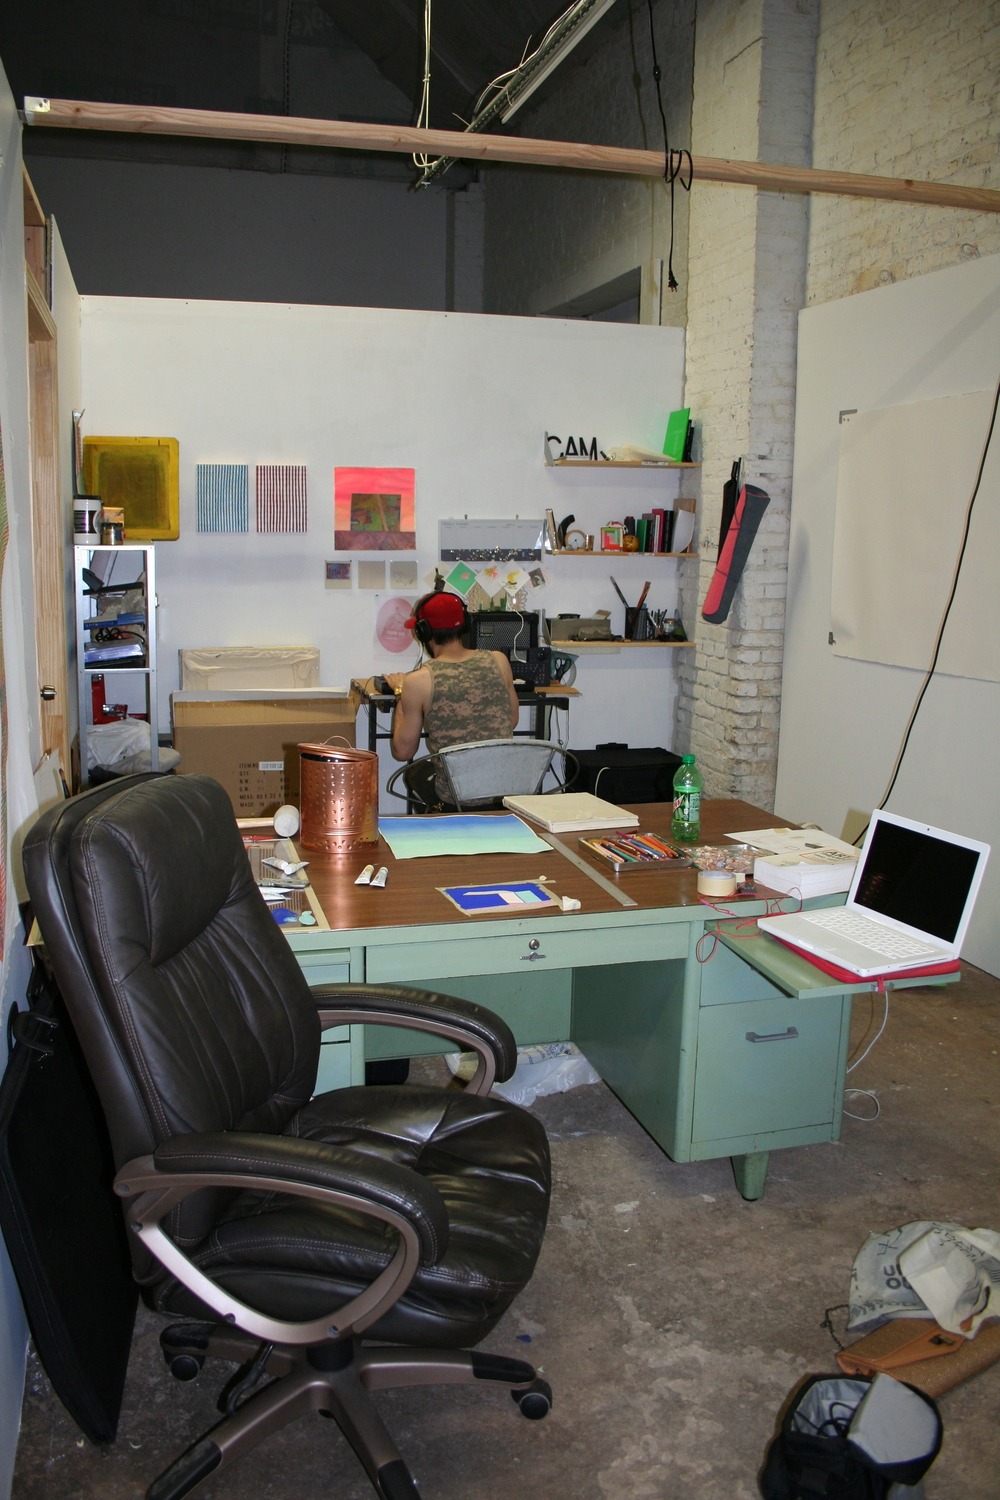 A peek into one of the artist's studio.